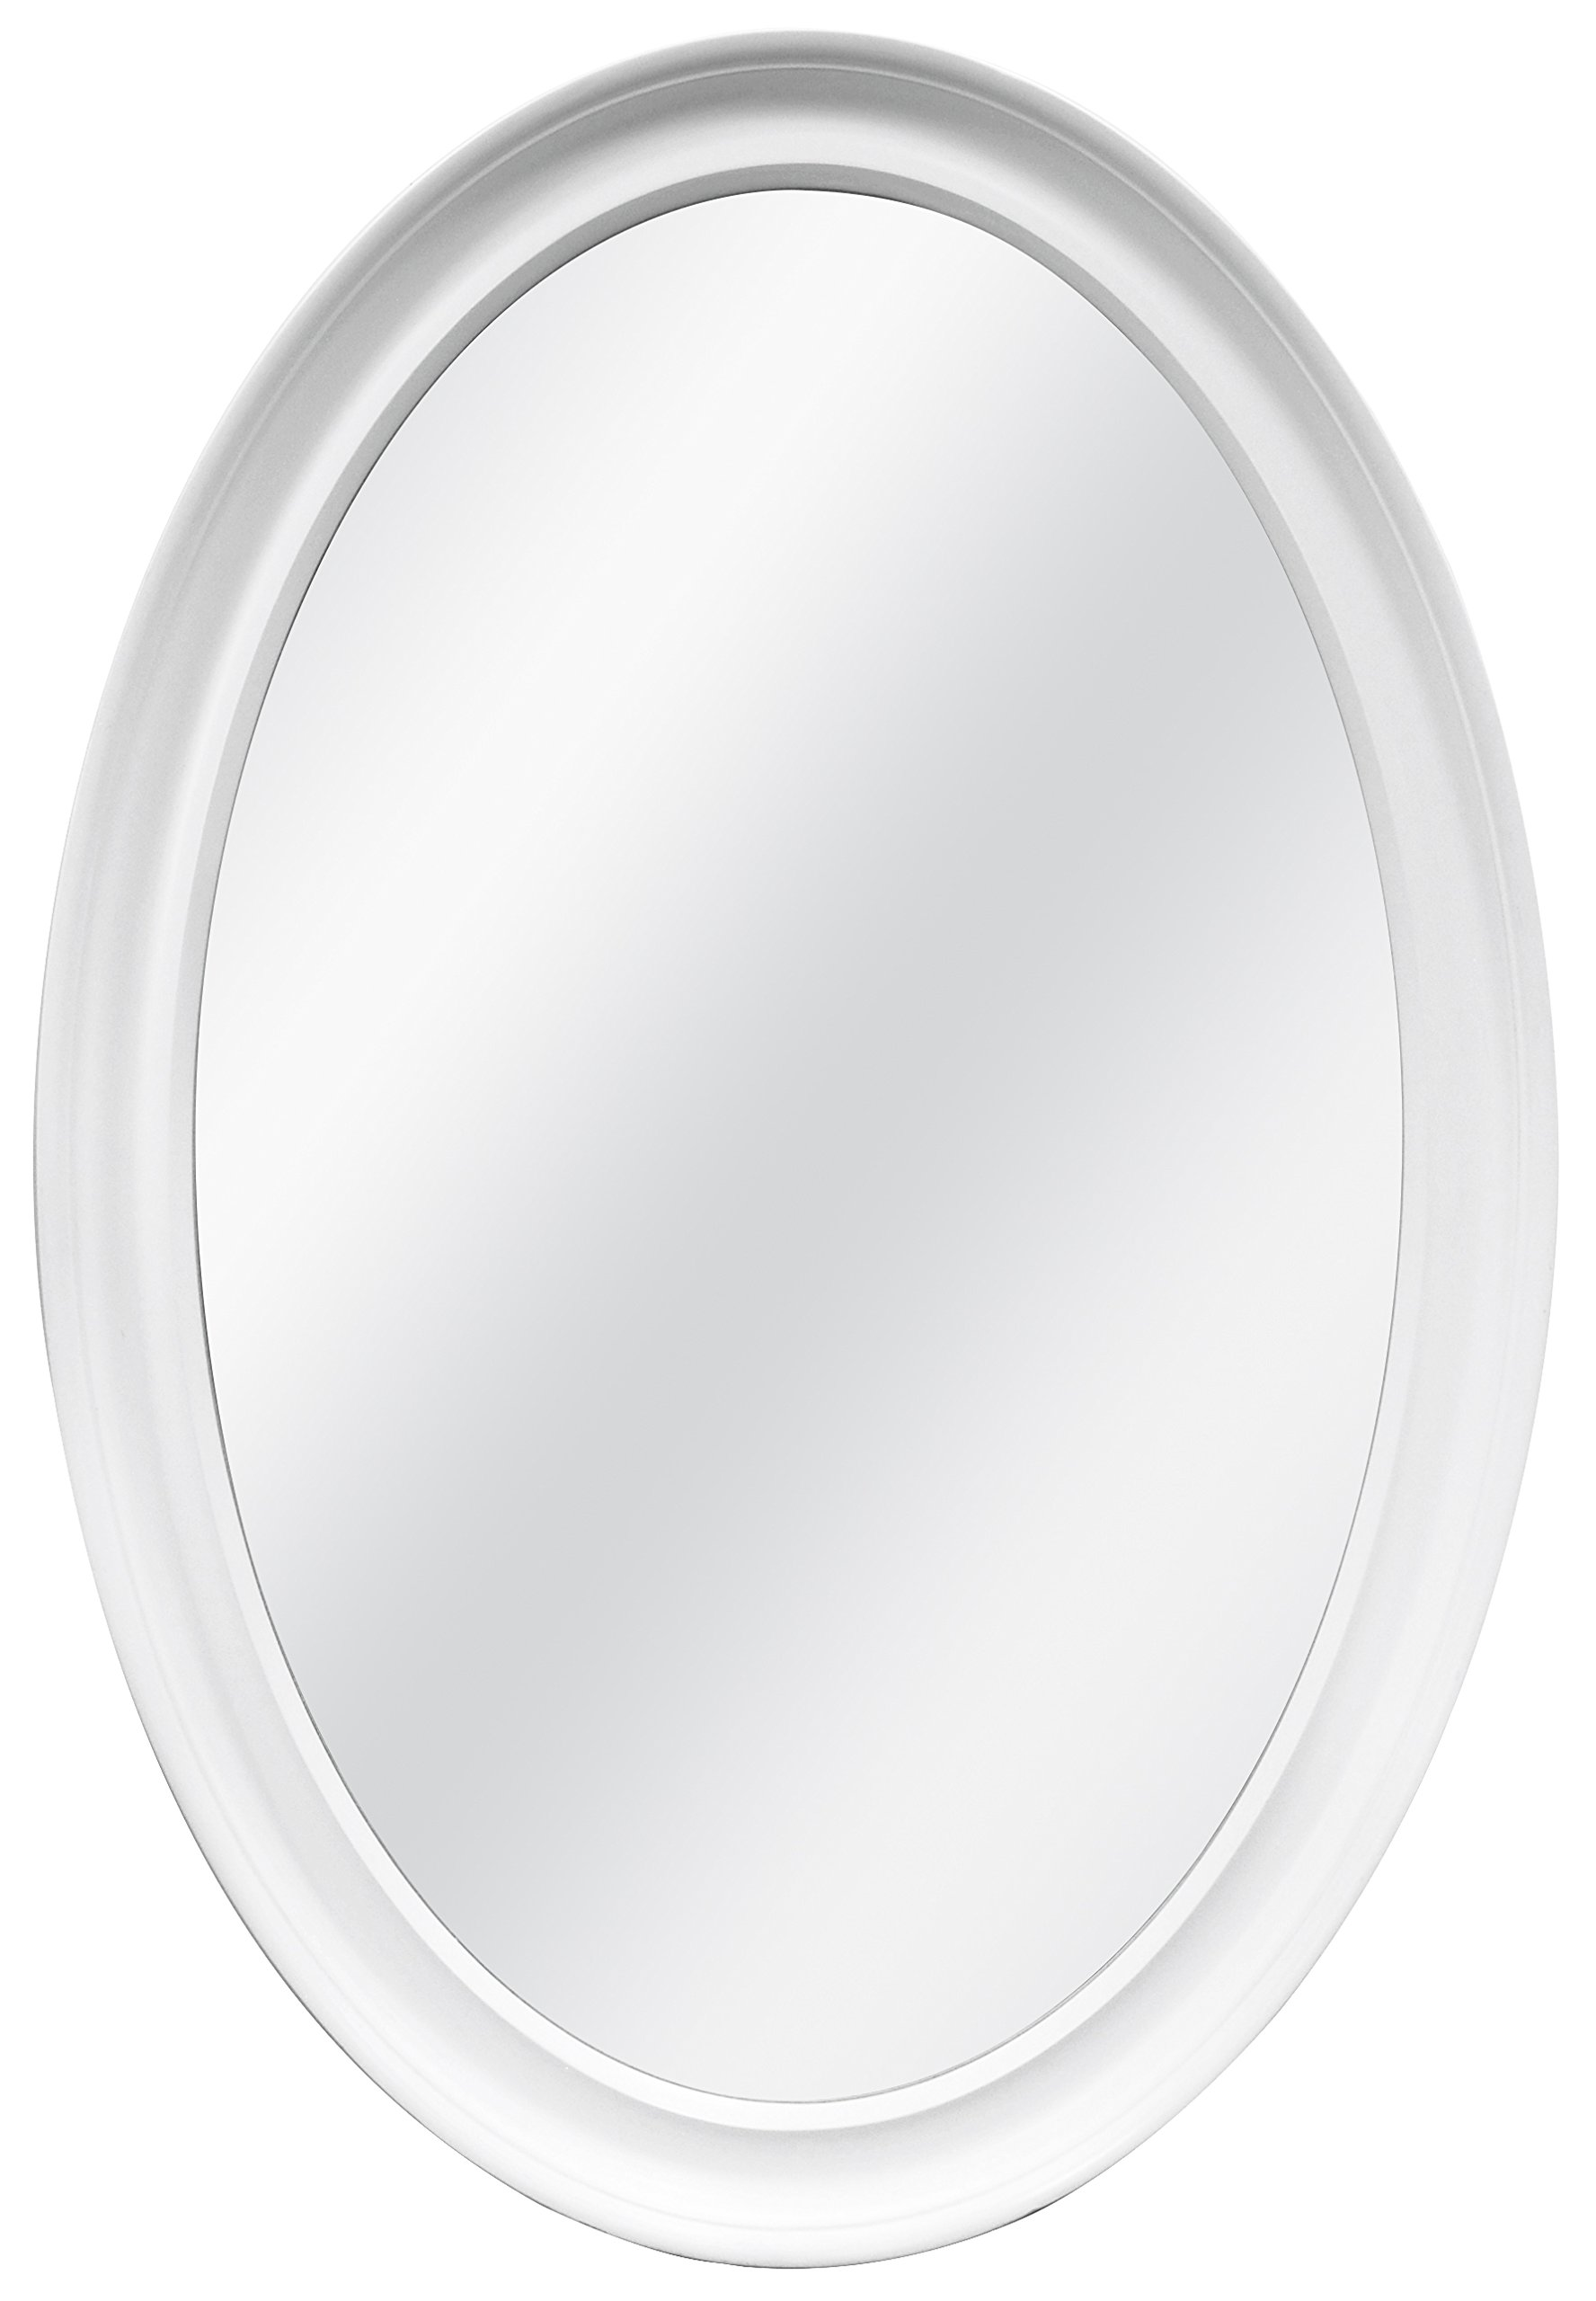 MCS Oval Wall Mirror, 21x31 Inch Overall Size, White (20458)